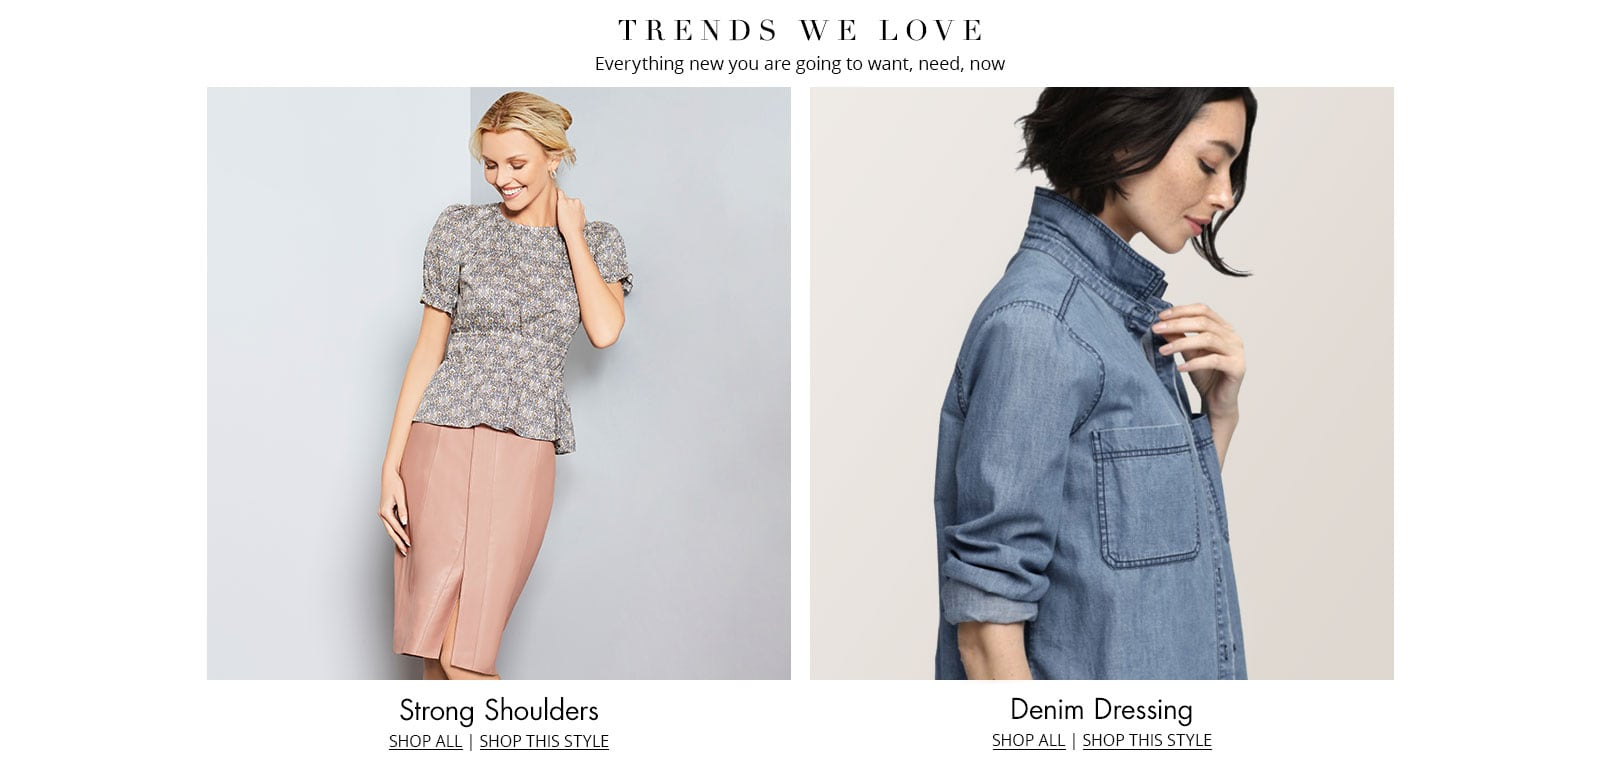 Shop these women's trends at Dillards.com